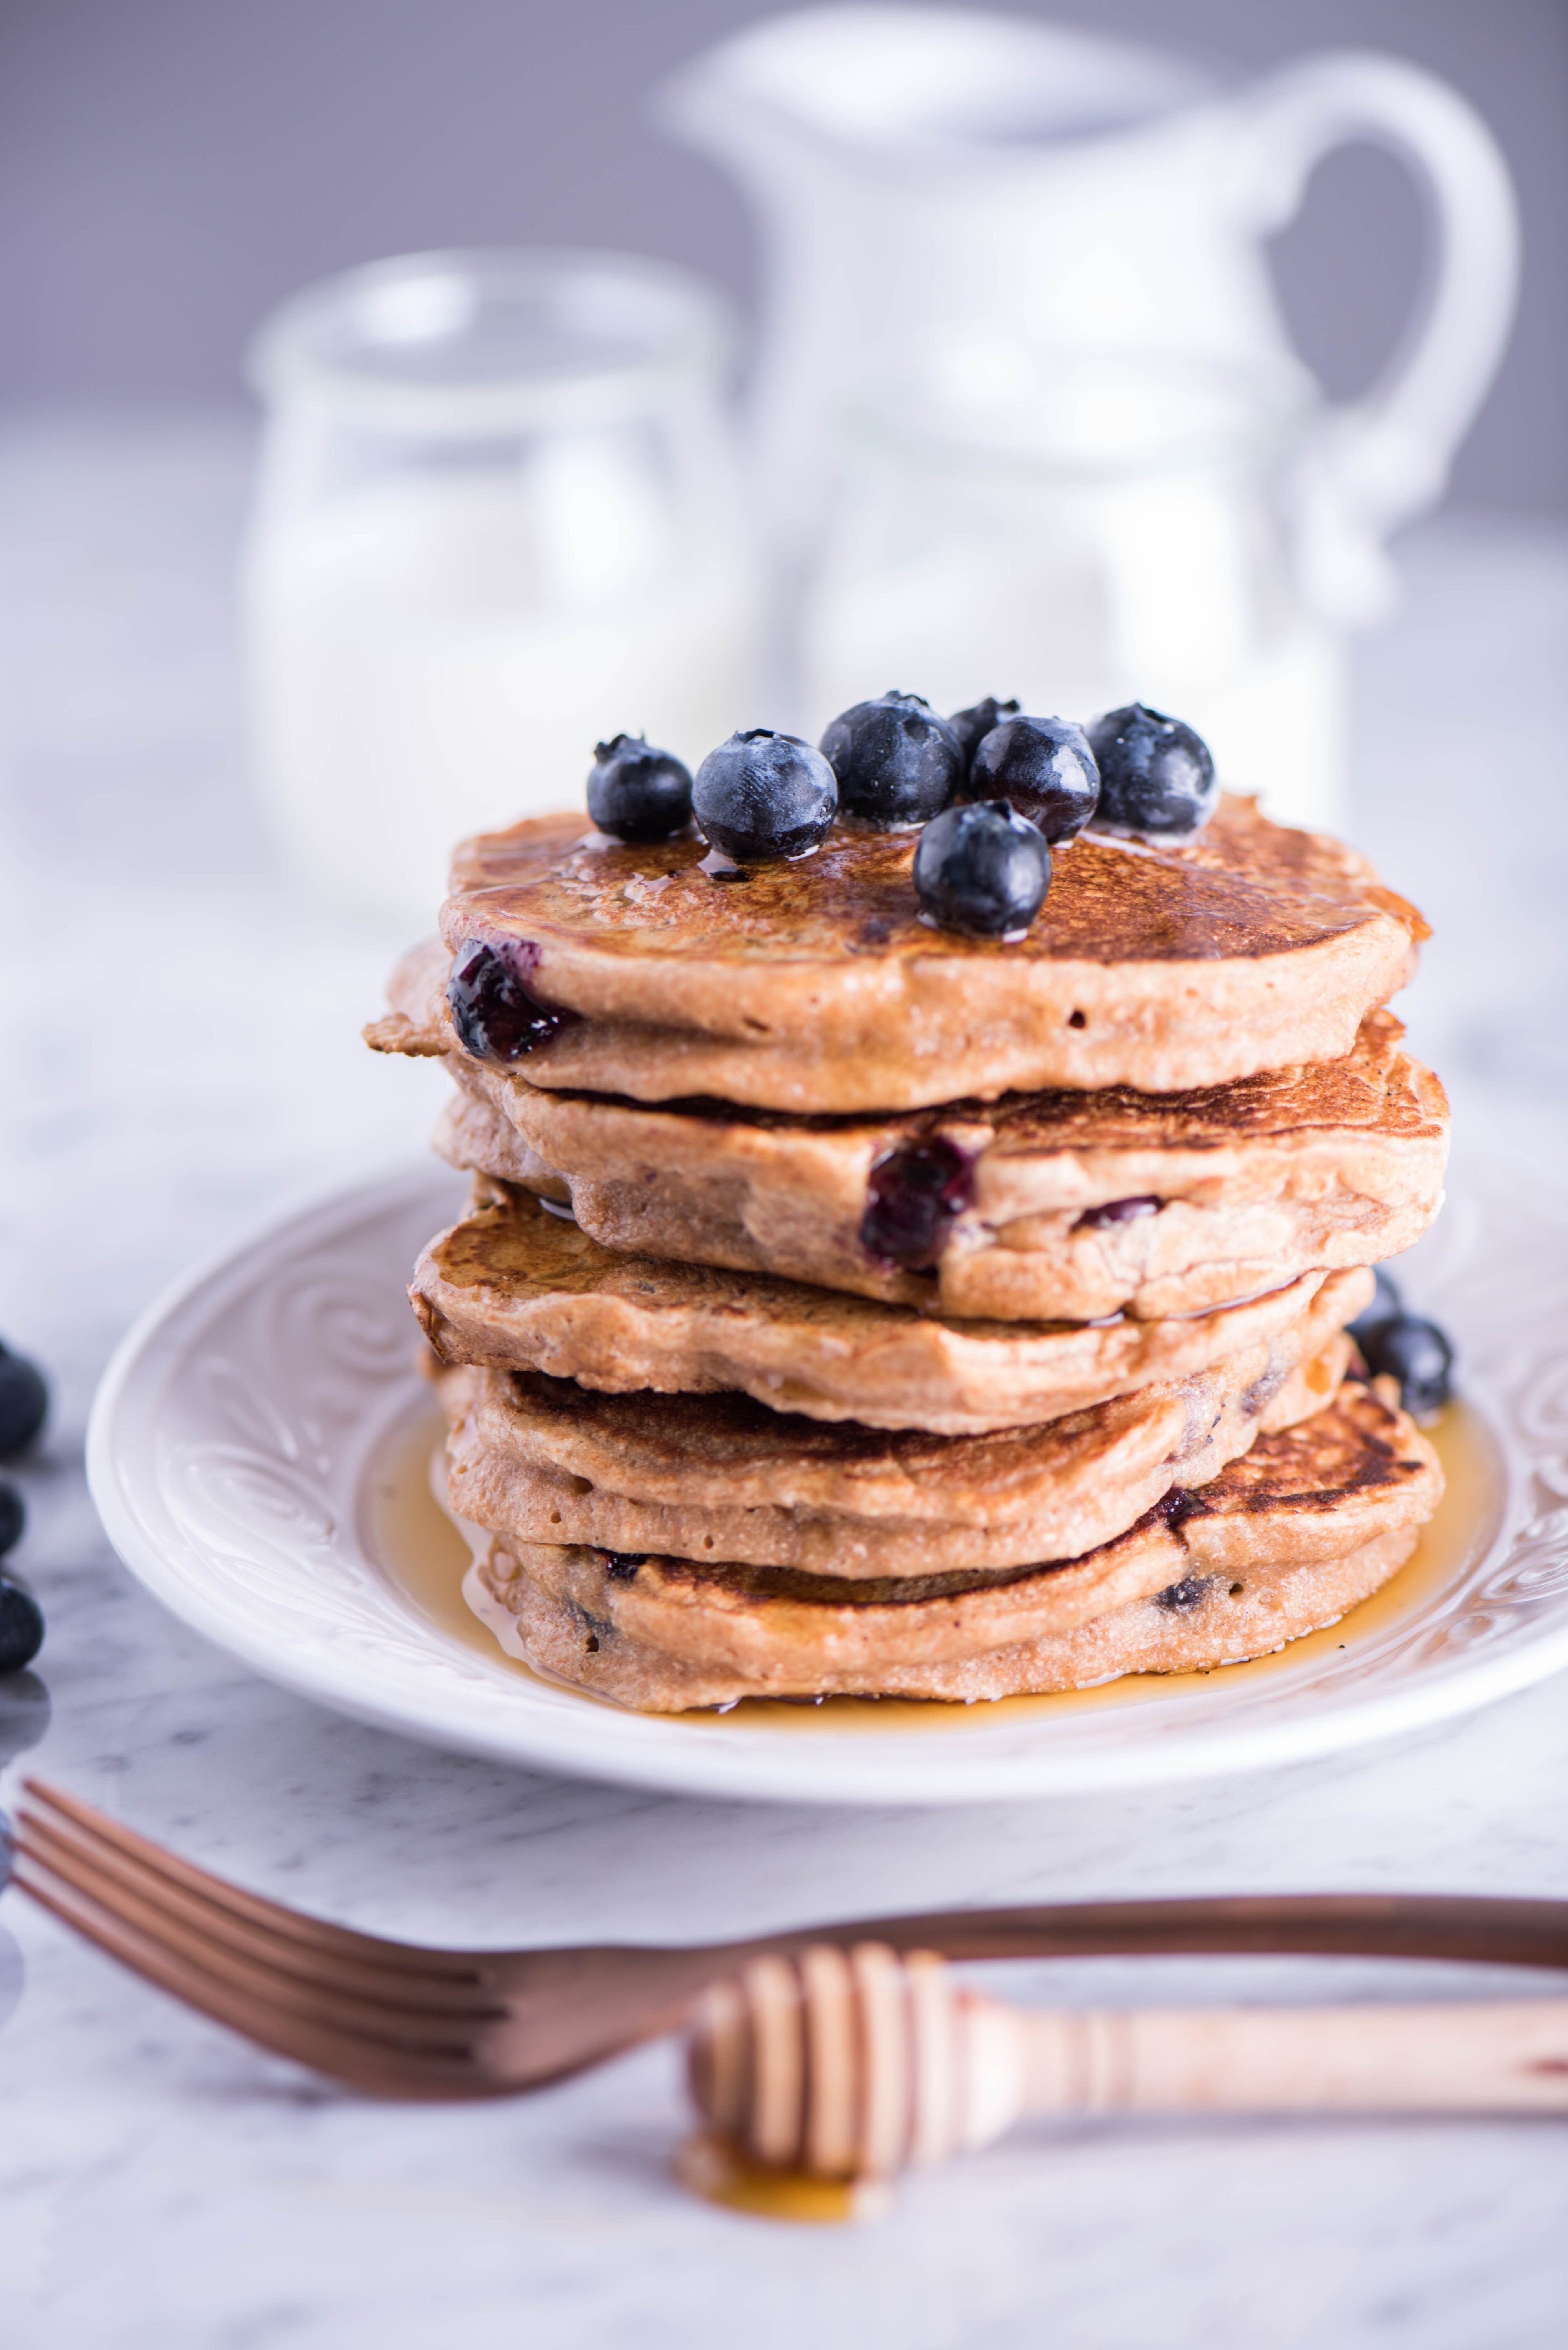 Hot Cakes con Blueberries